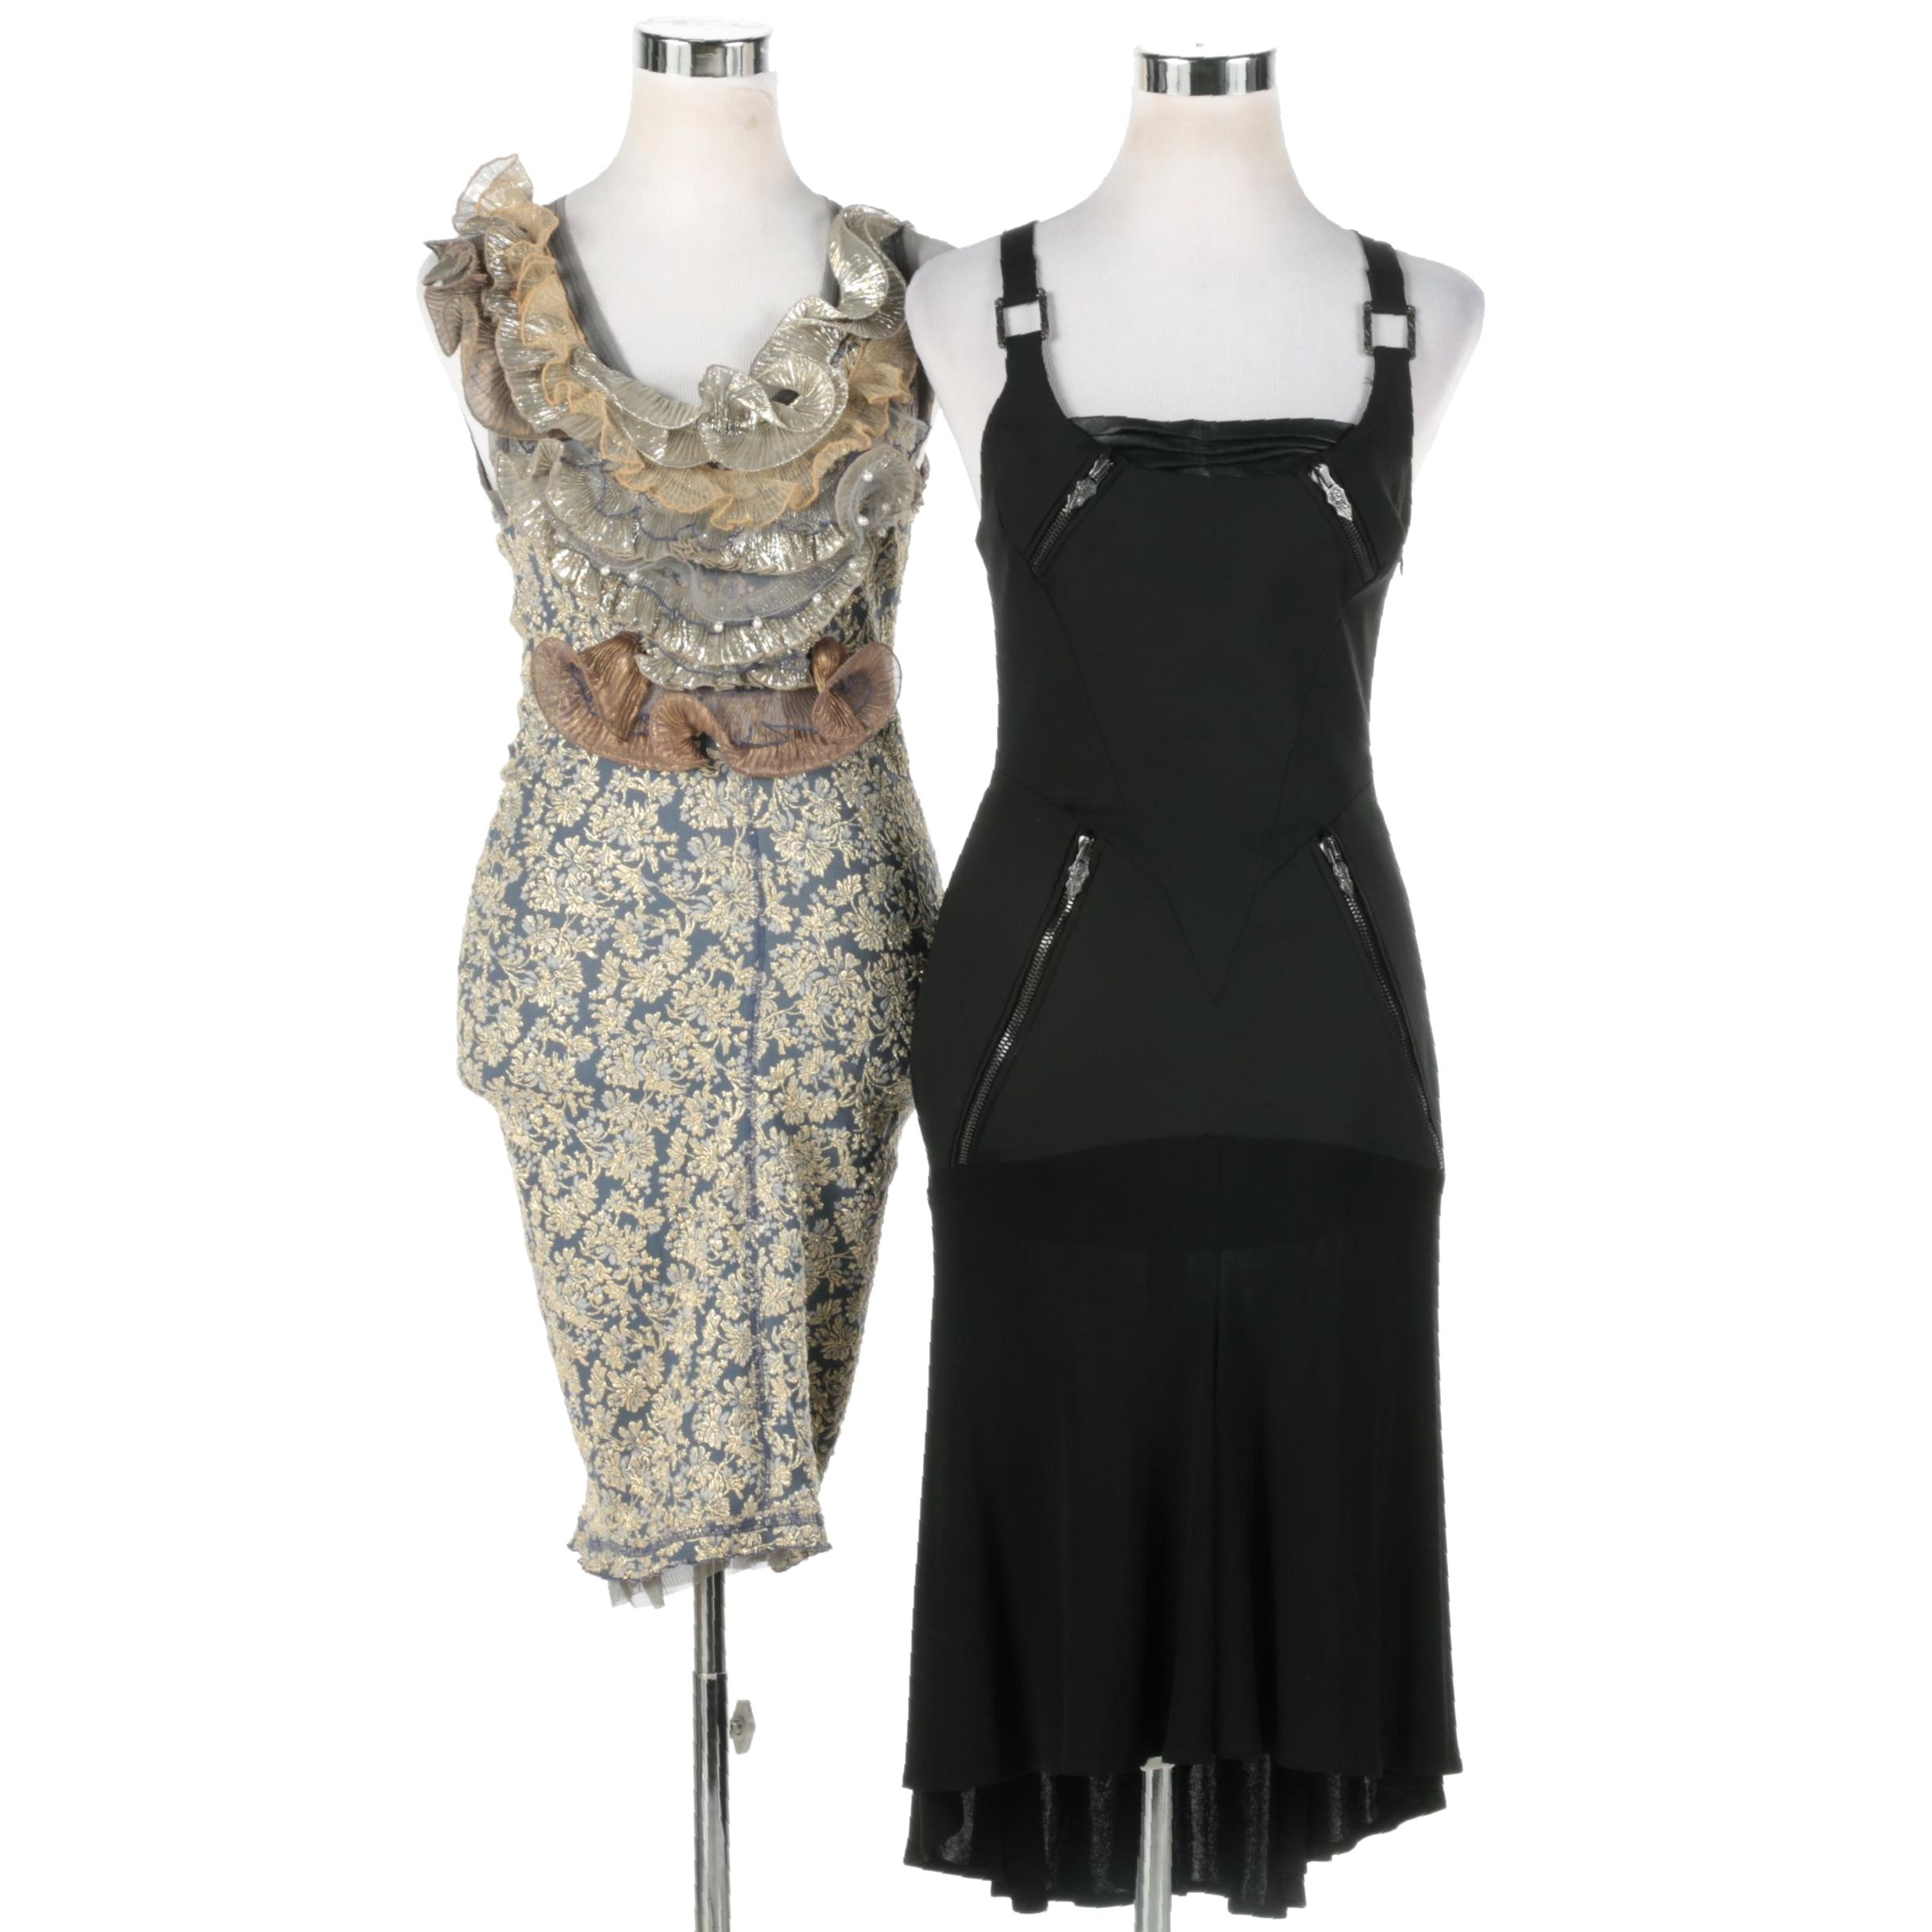 Women's Versace and Marc Jacobs Dresses